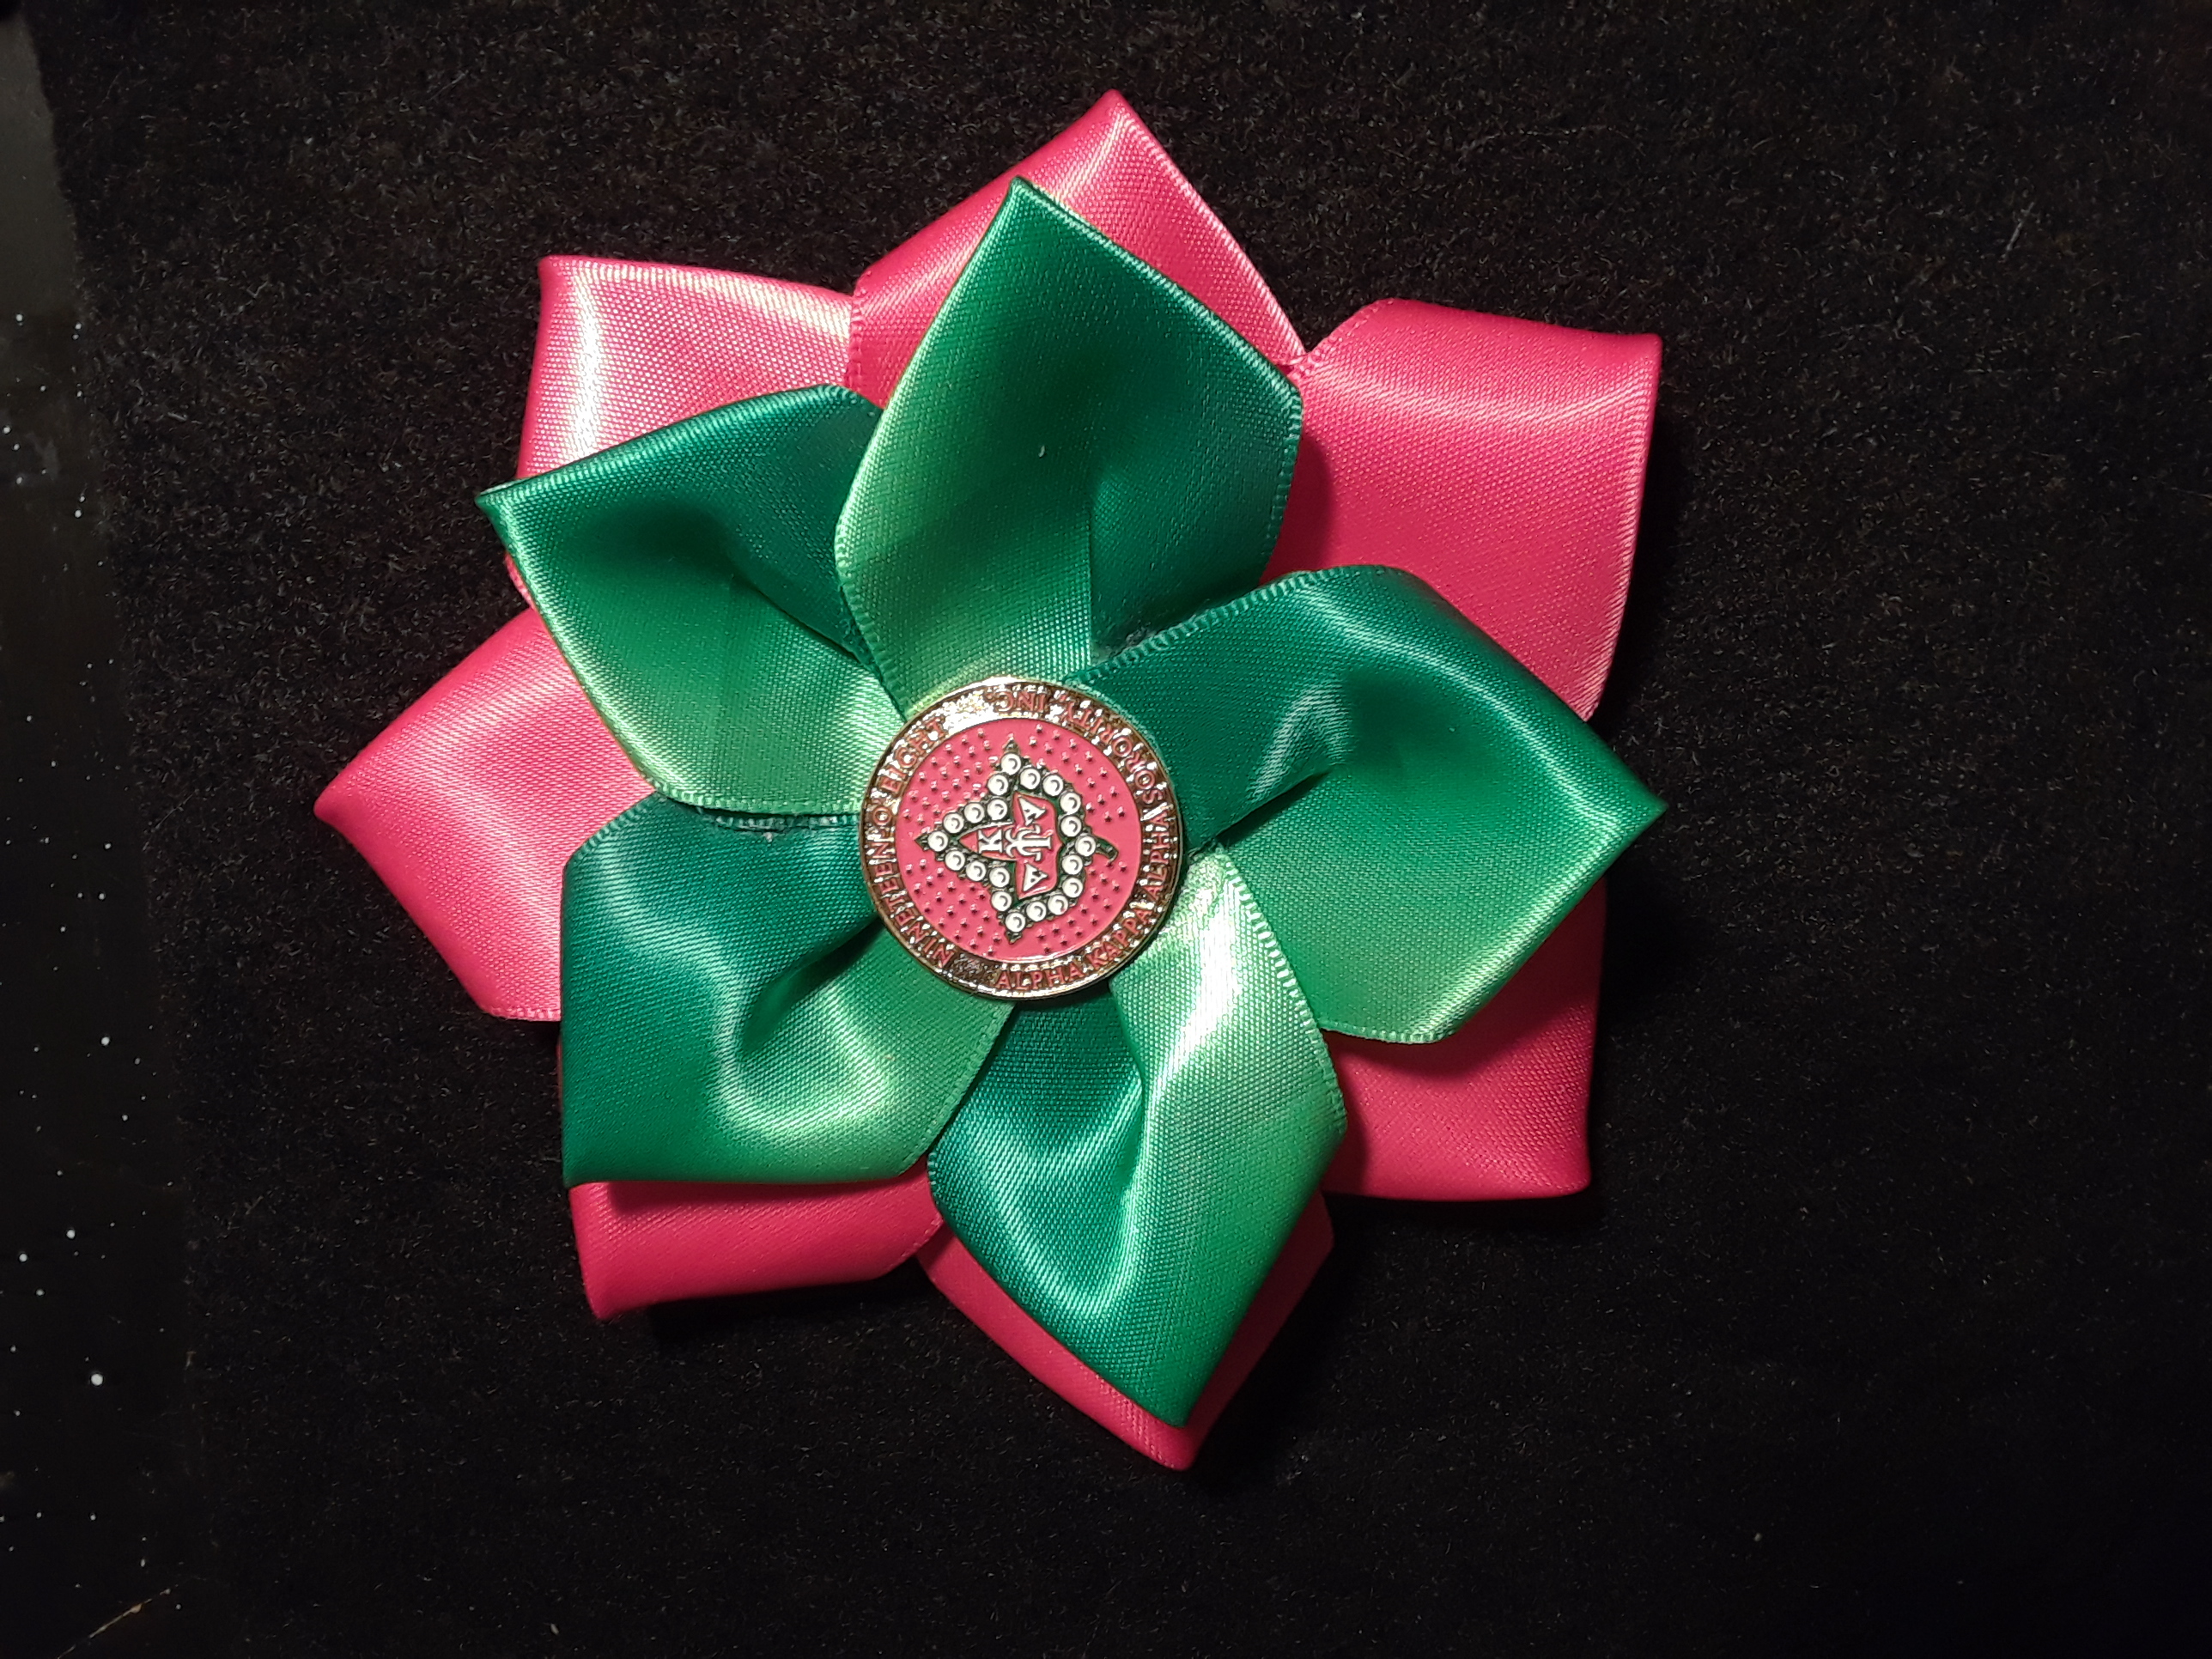 G/P flower badge